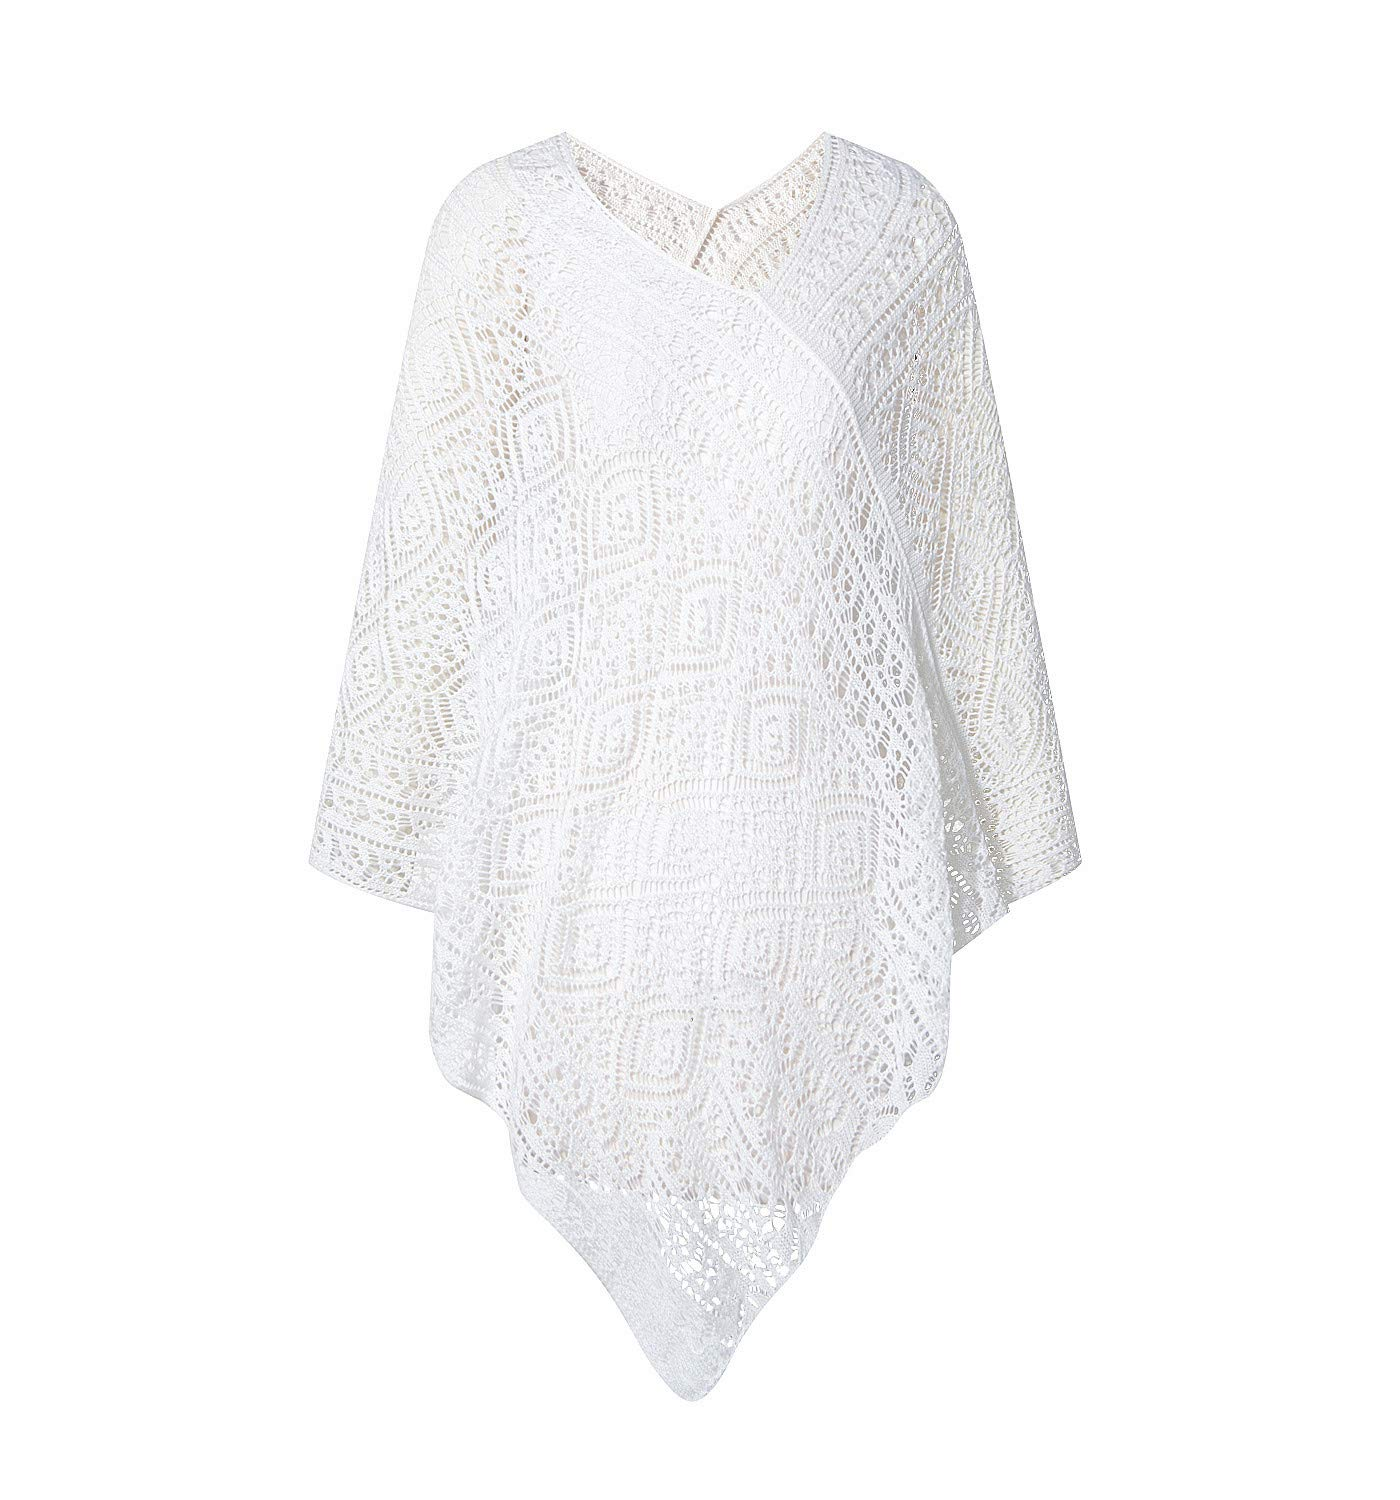 Puli V-neck Pullover Crochet Poncho Ultra Soft Kintted Shawl Cover Up Cape Milky White